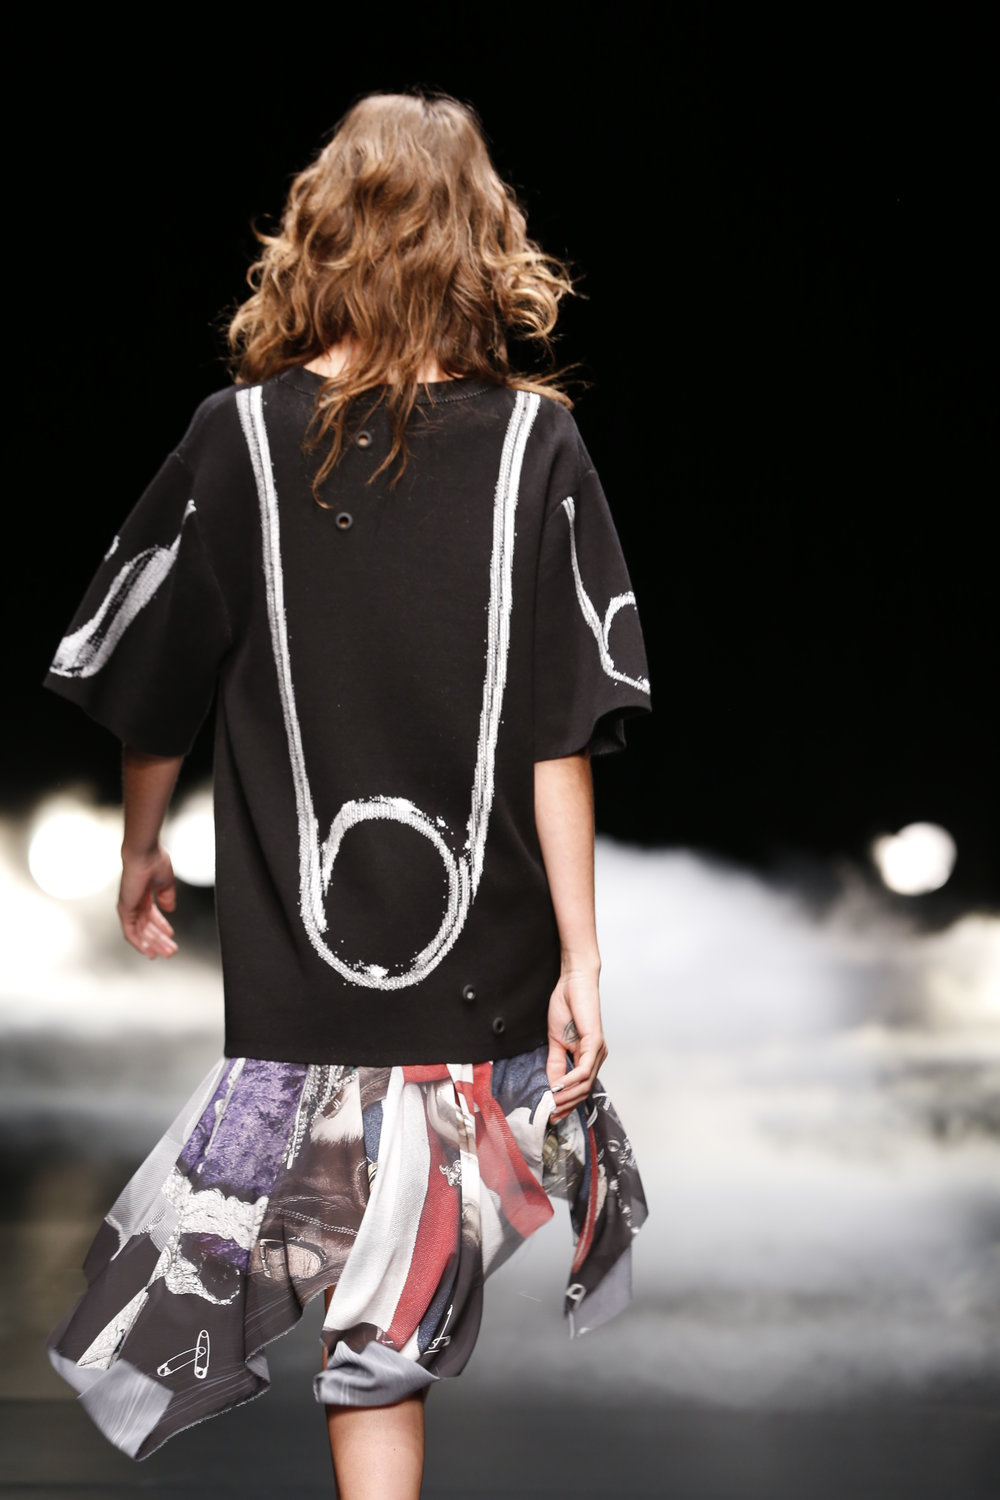 Top 10 Most Famous Young Fashion Designers - Web Design Top runway fashion designers